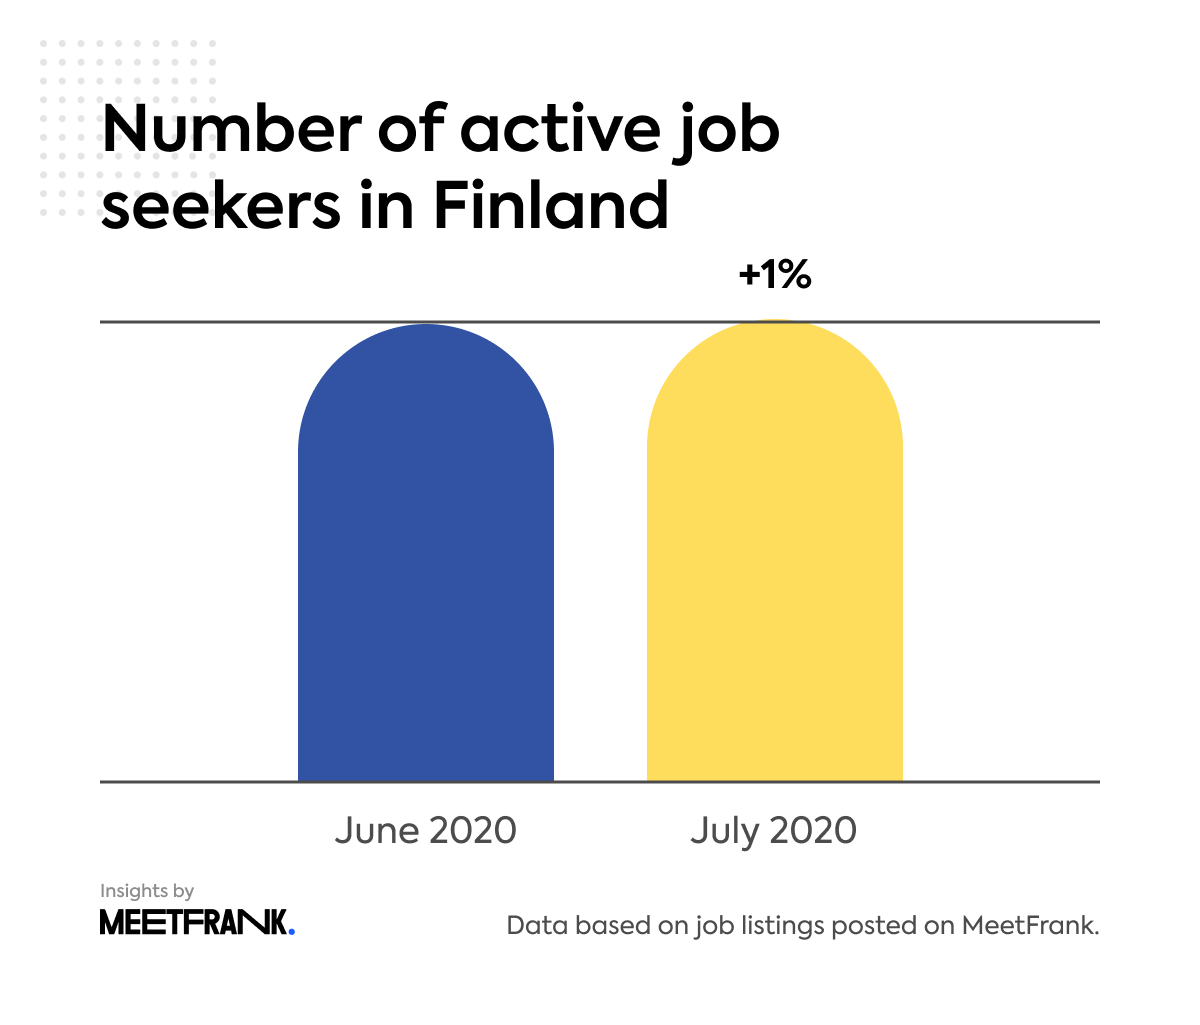 number of active job seekers in Finland